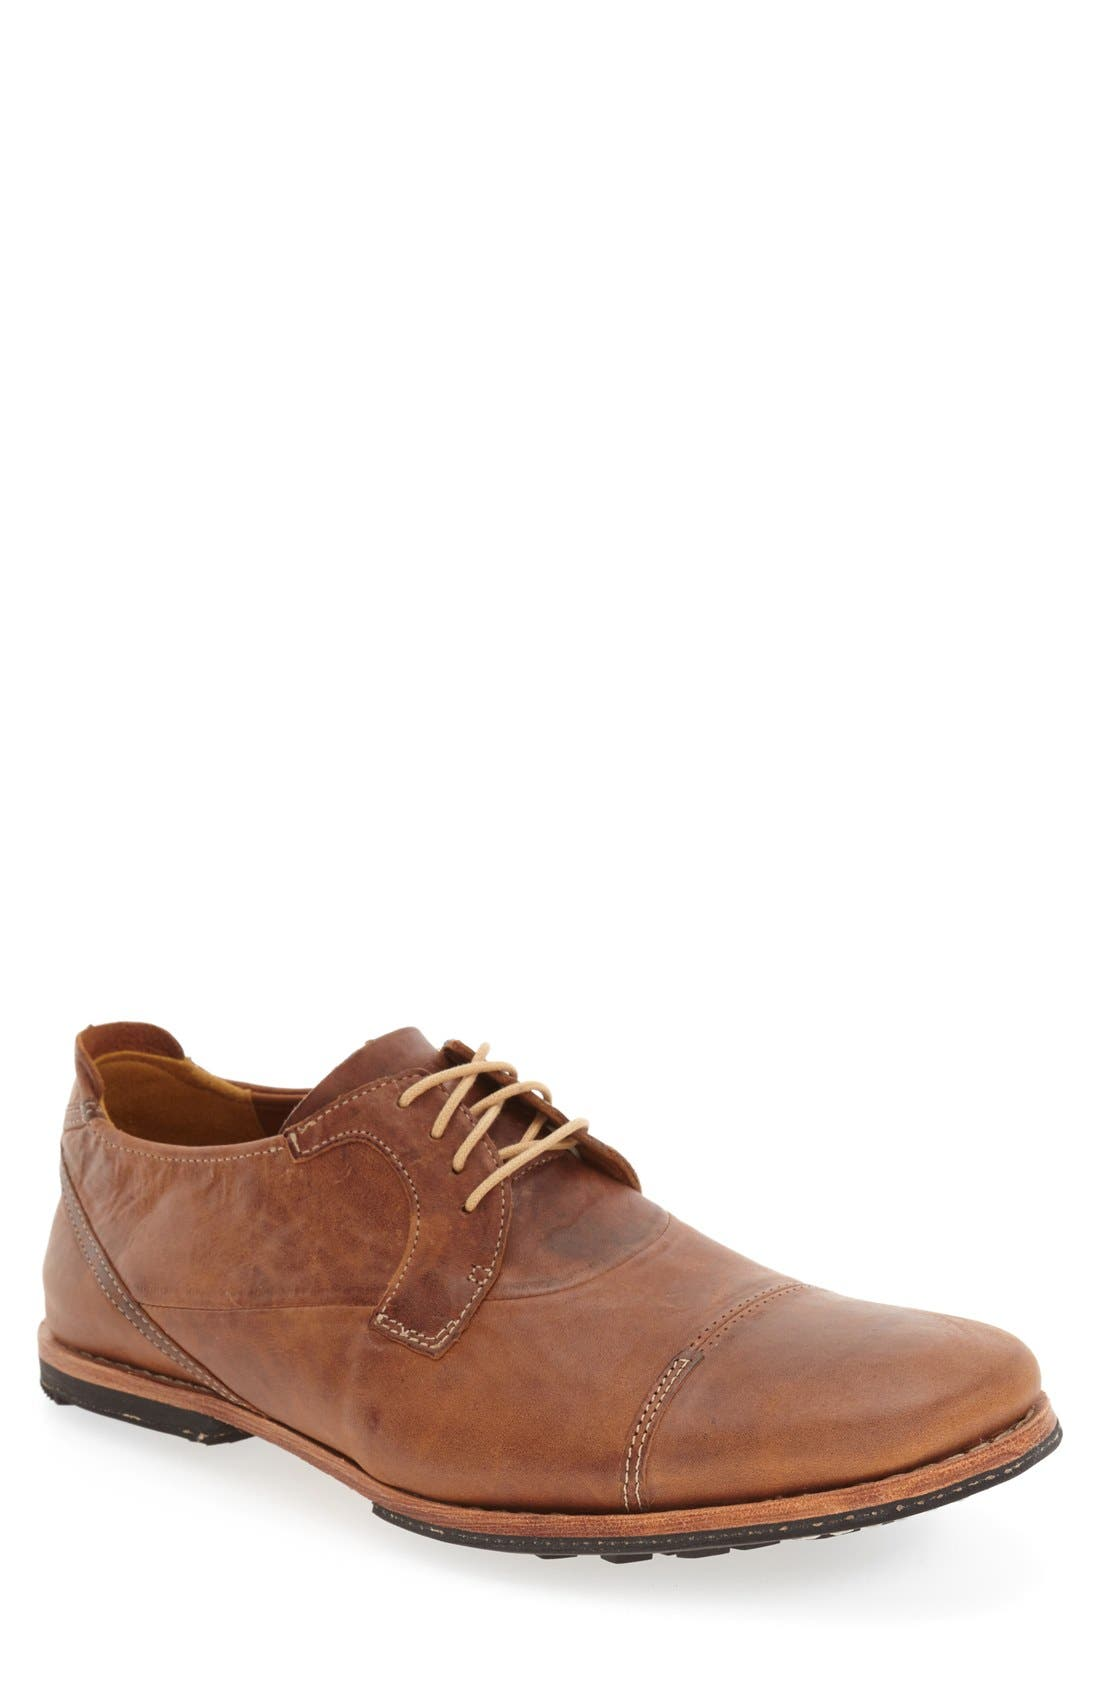 Alternate Image 2  - Timberland 'Wodehouse Lost History' Cap Toe Oxford (Men)